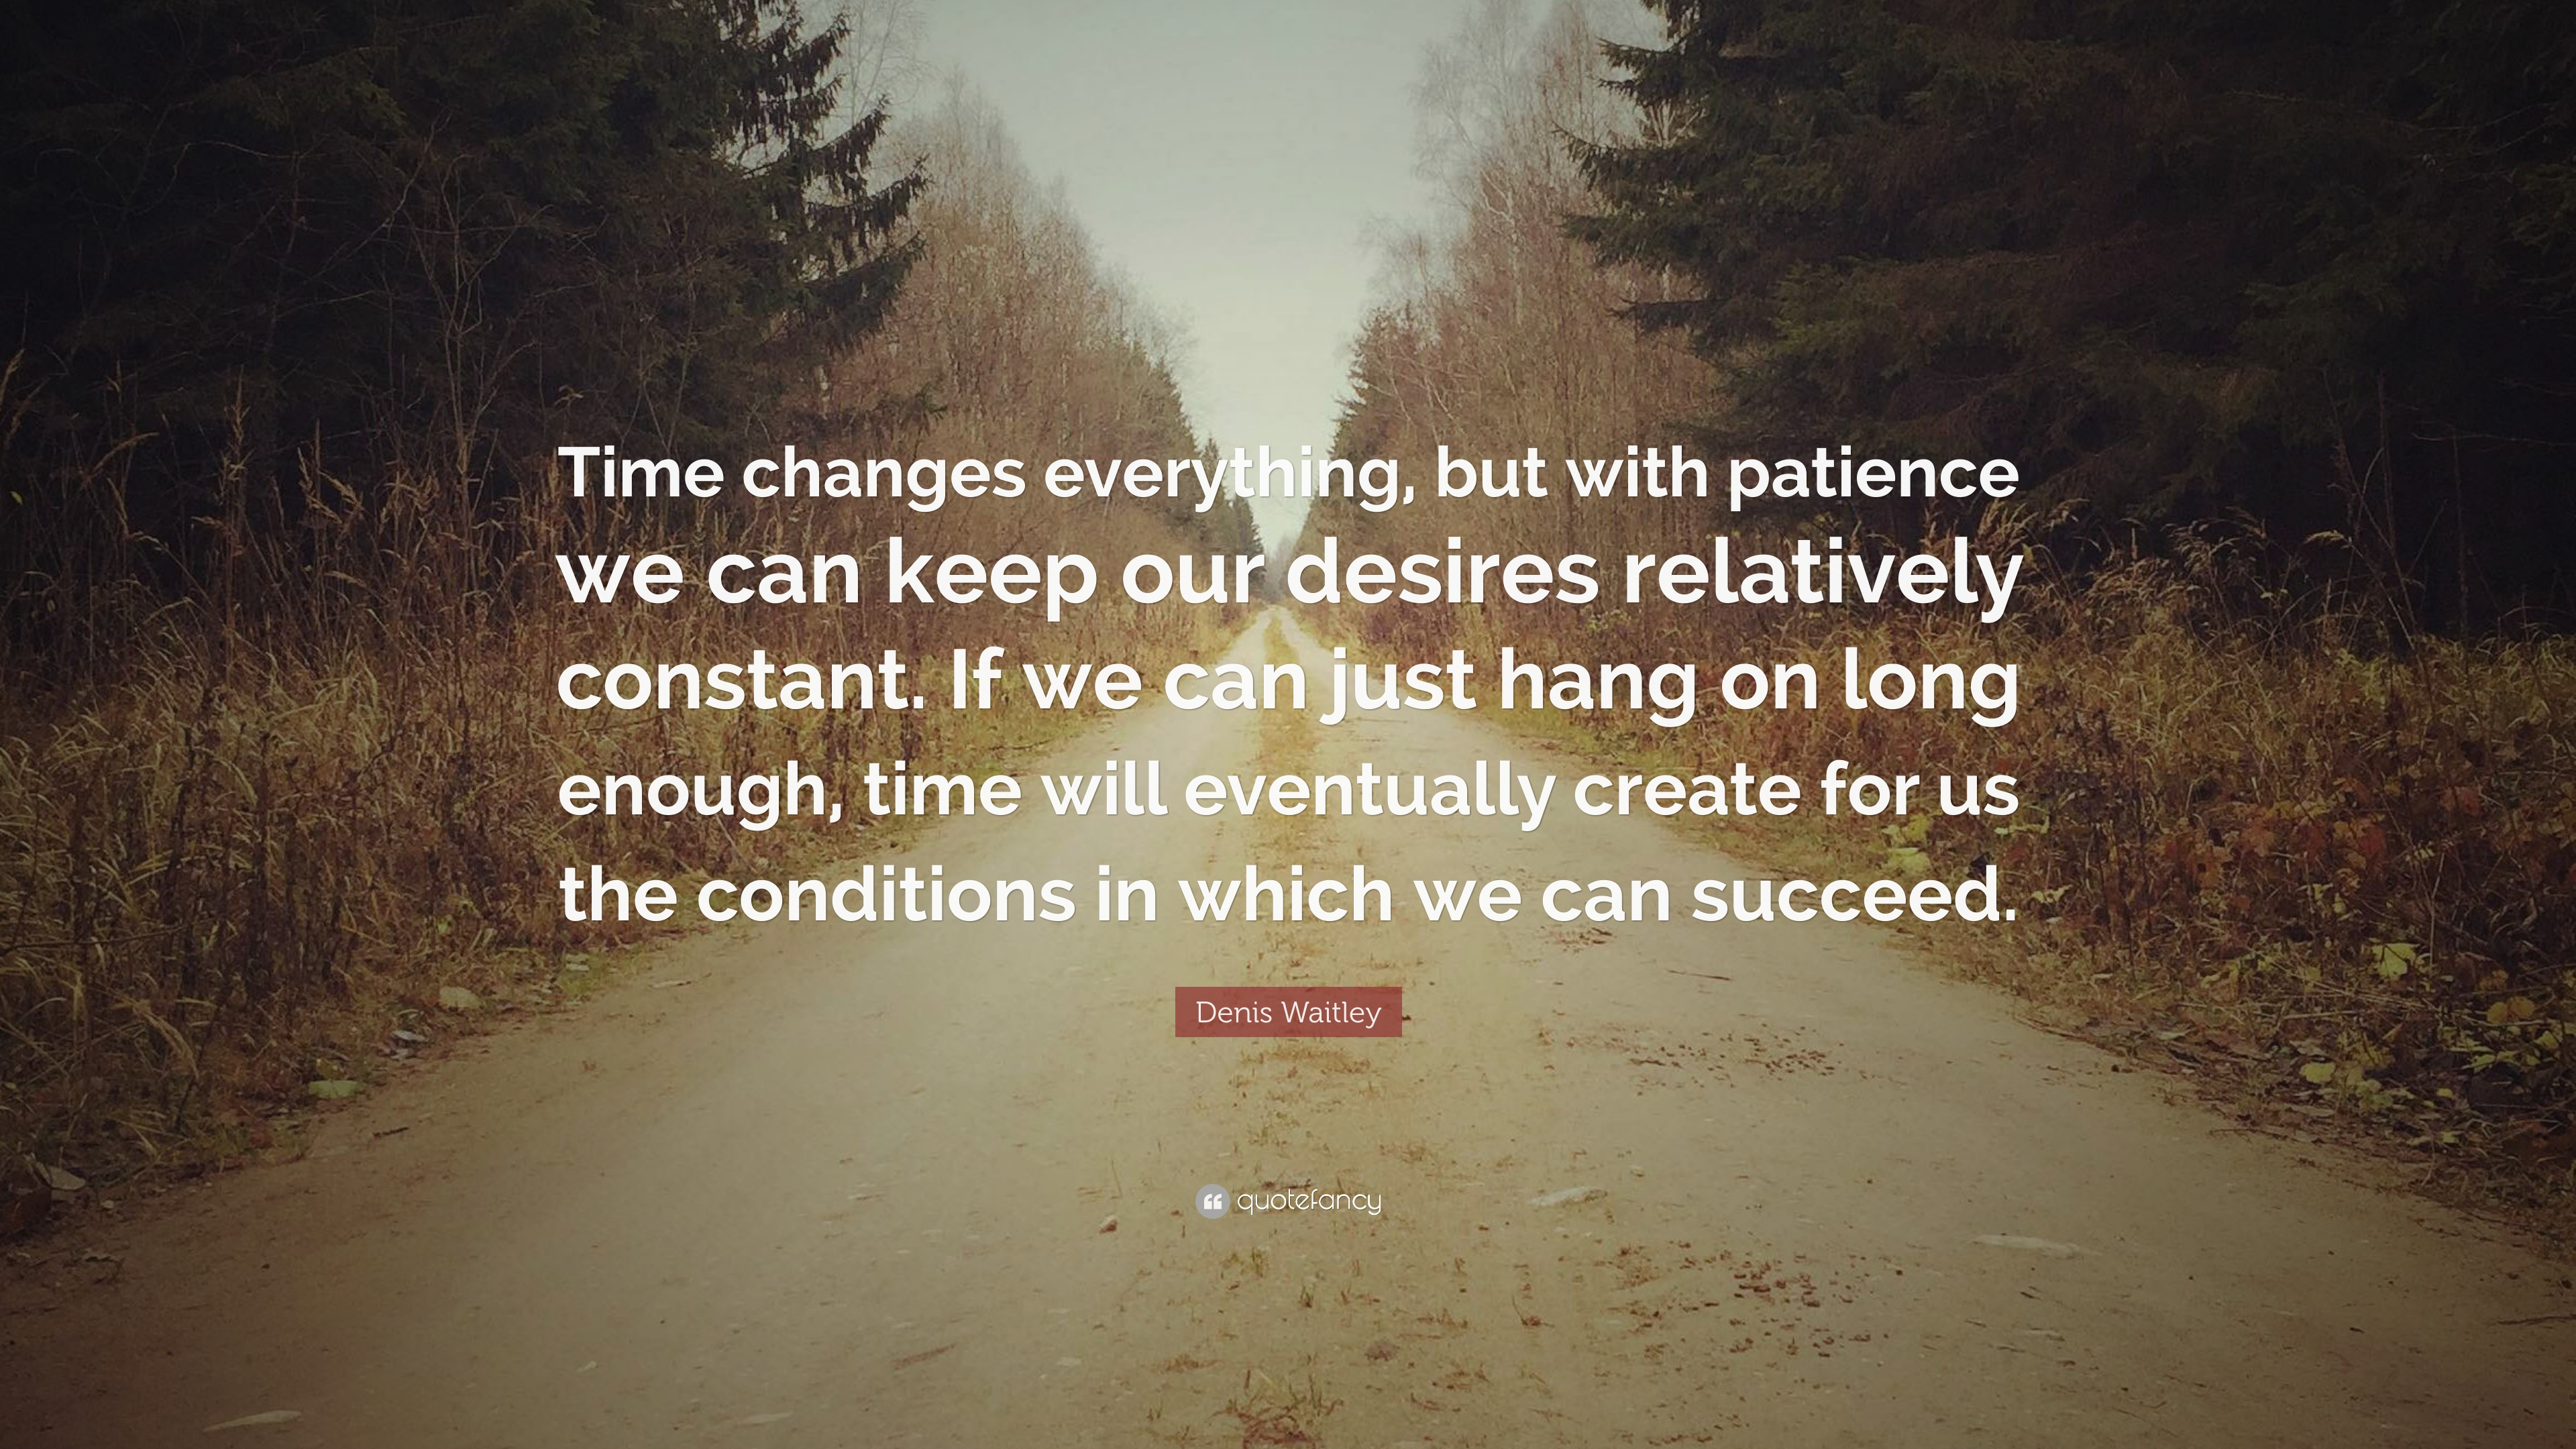 Denis Waitley Quote Time Changes Everything But With Patience - Time changes in us